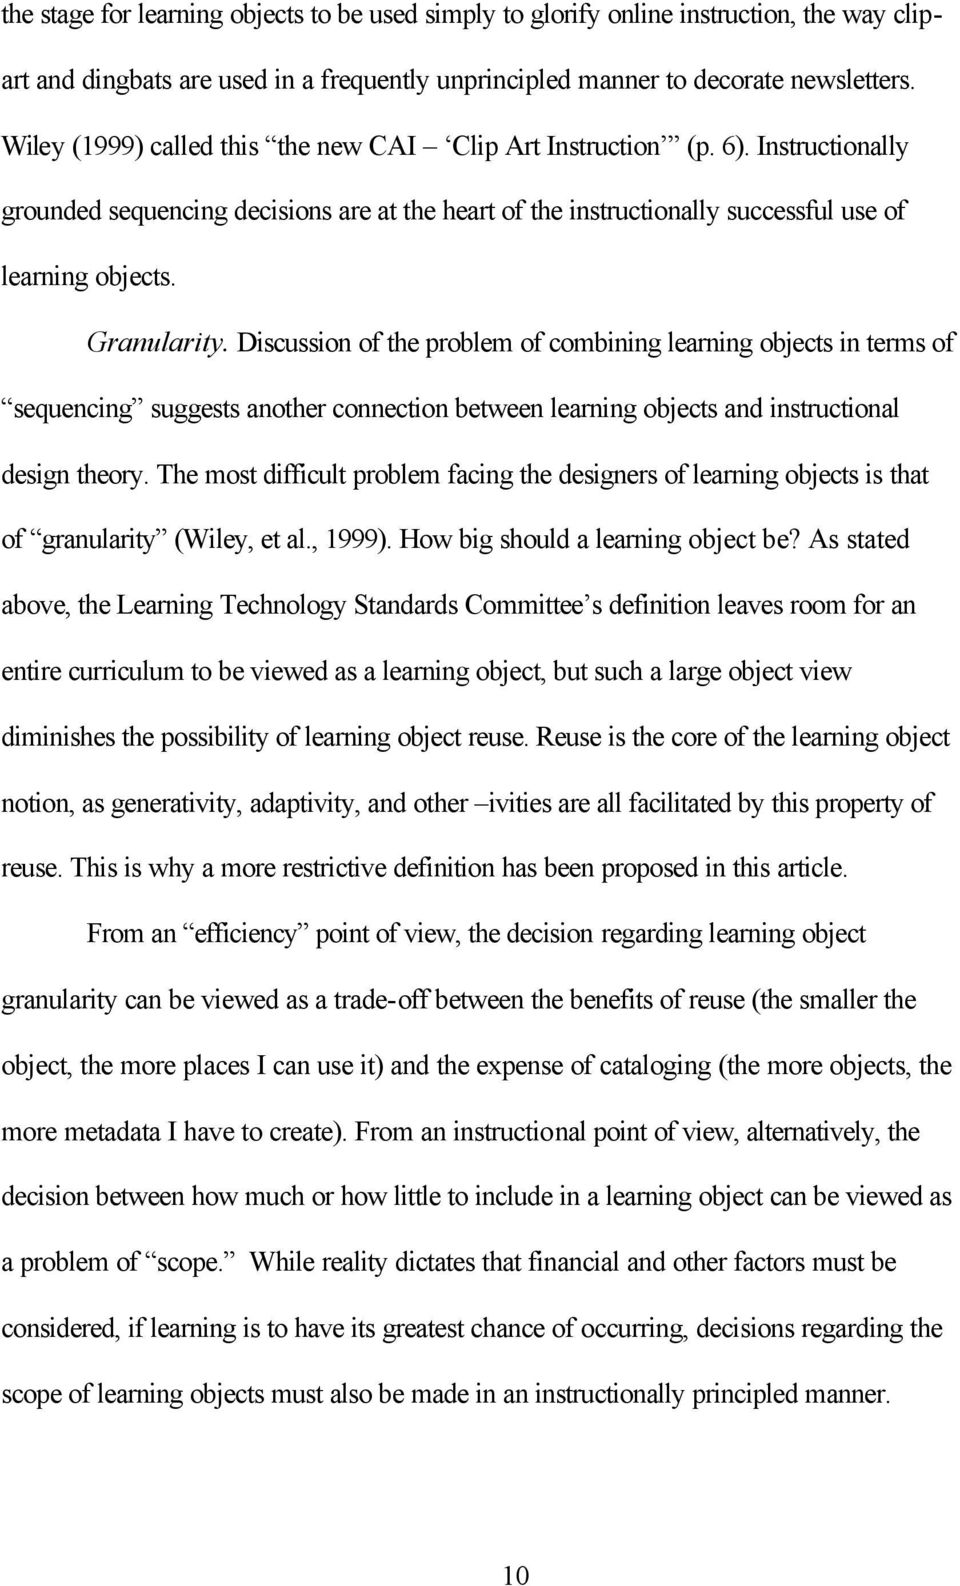 Discussion of the problem of combining learning objects in terms of sequencing suggests another connection between learning objects and instructional design theory.